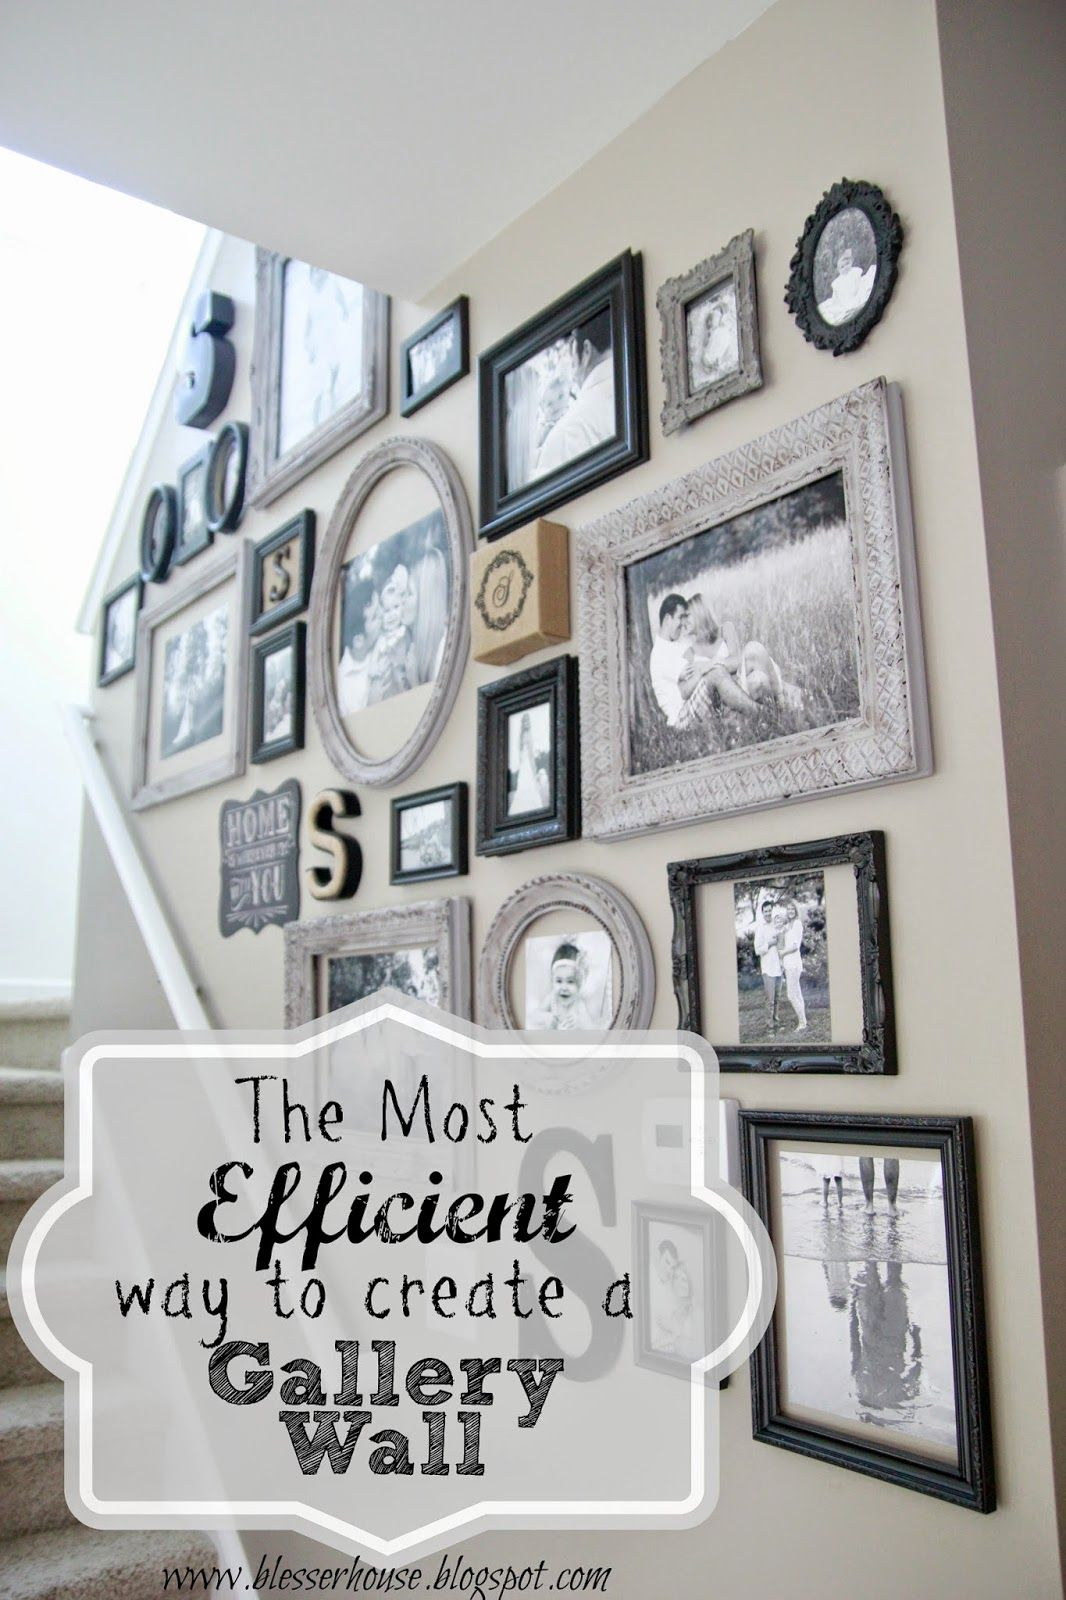 Wall Gallery Frame Set the most efficient way to create a gallery wall | gallery wall